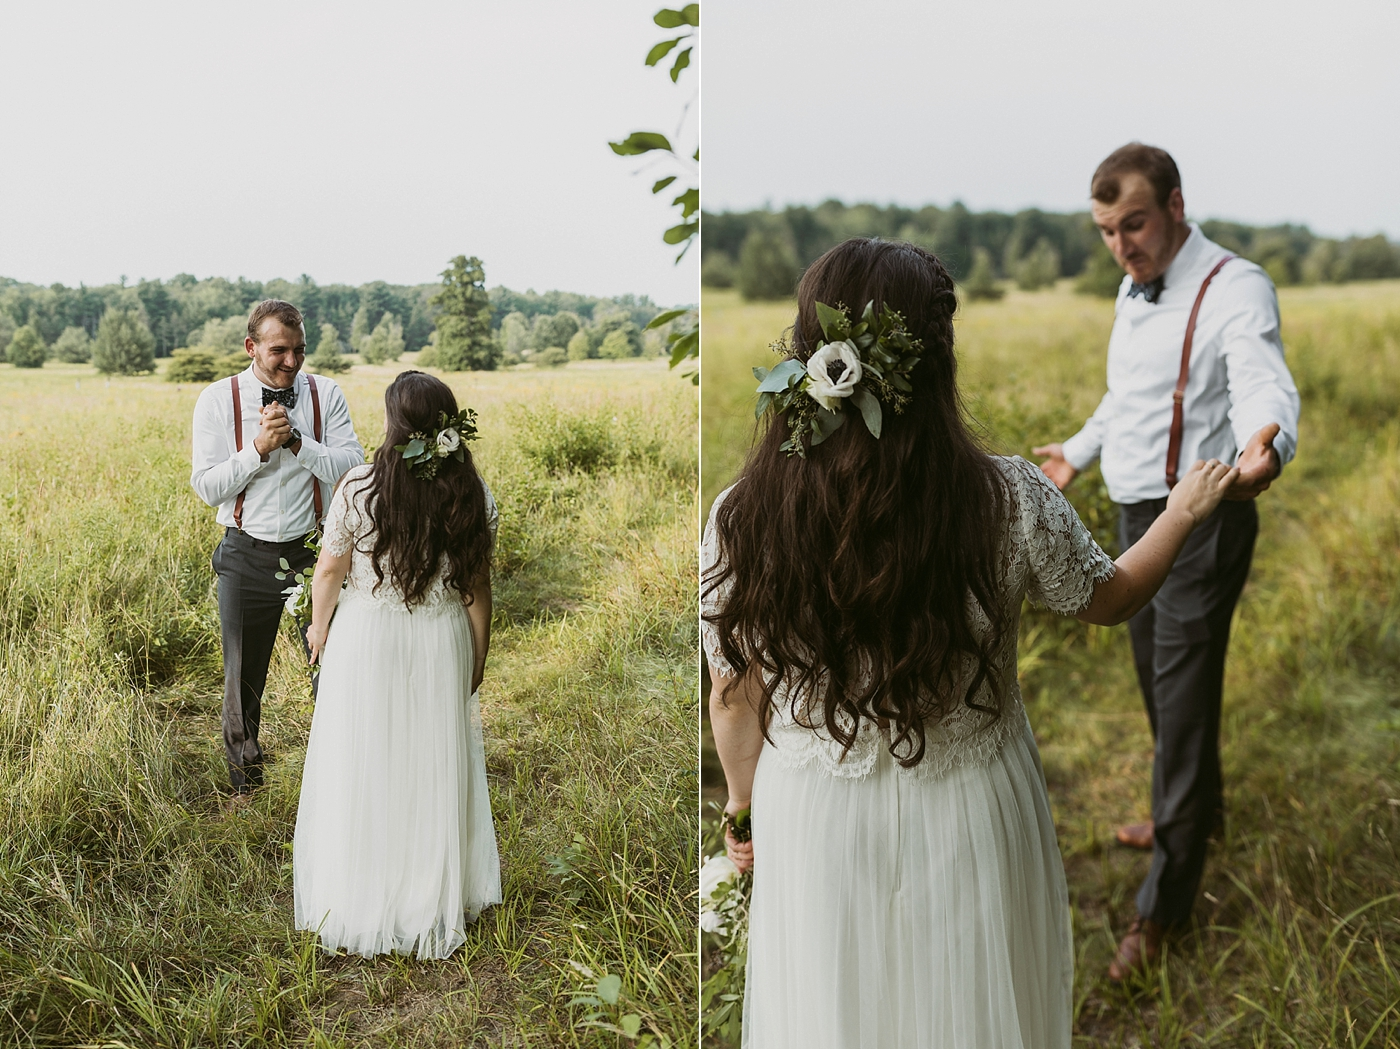 Meadow-Elopement-Ashley+Ben_MJPHOTO2018-62.jpg